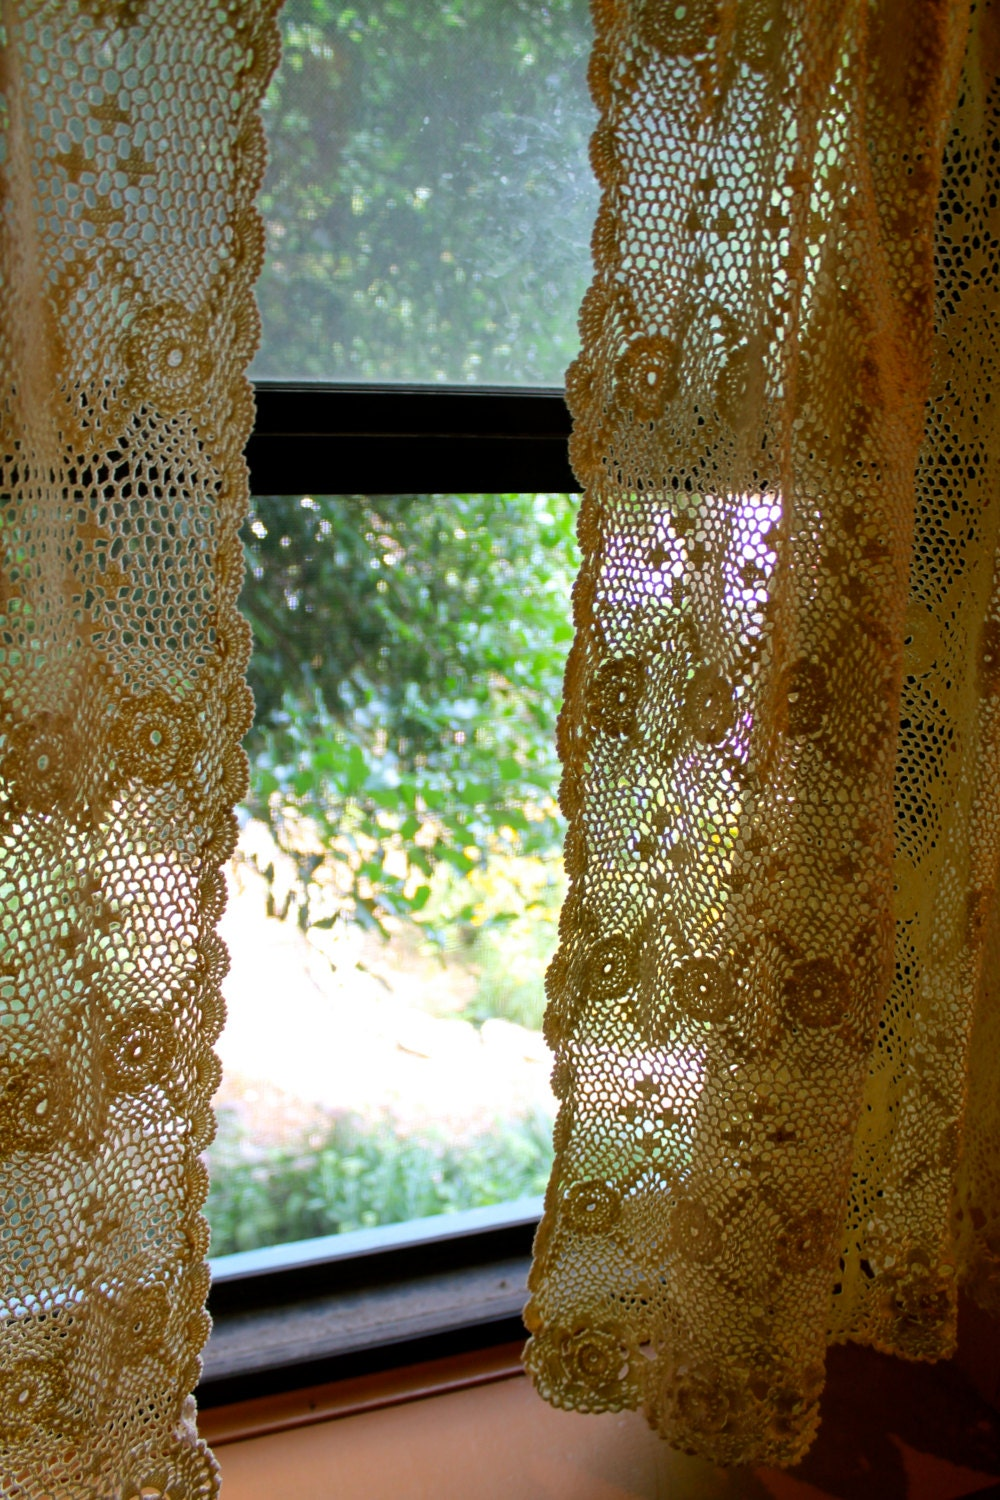 Crocheted Lace 2 Panel Cream Colored Curtains By Boxcararts